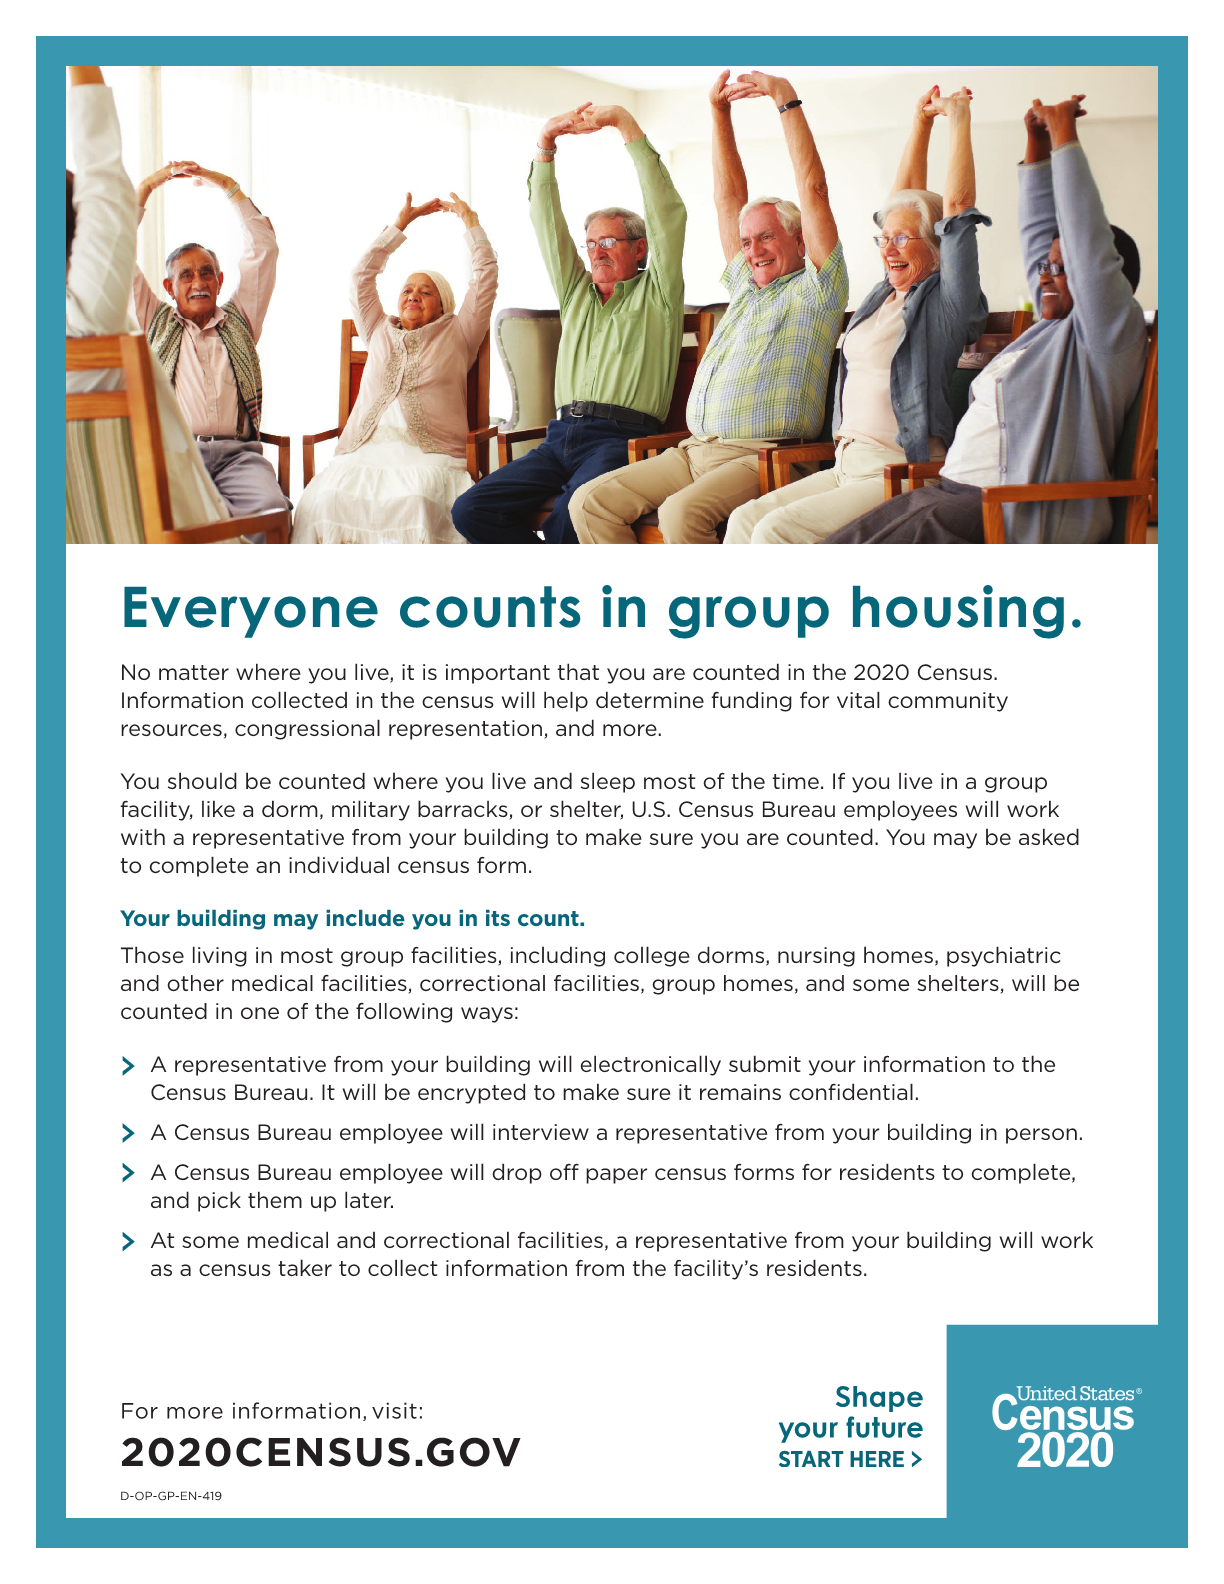 Fact Sheet for Group Housing (This includes a DCF or DDD funded group homes and other funding housing options such as a supported apartment.)